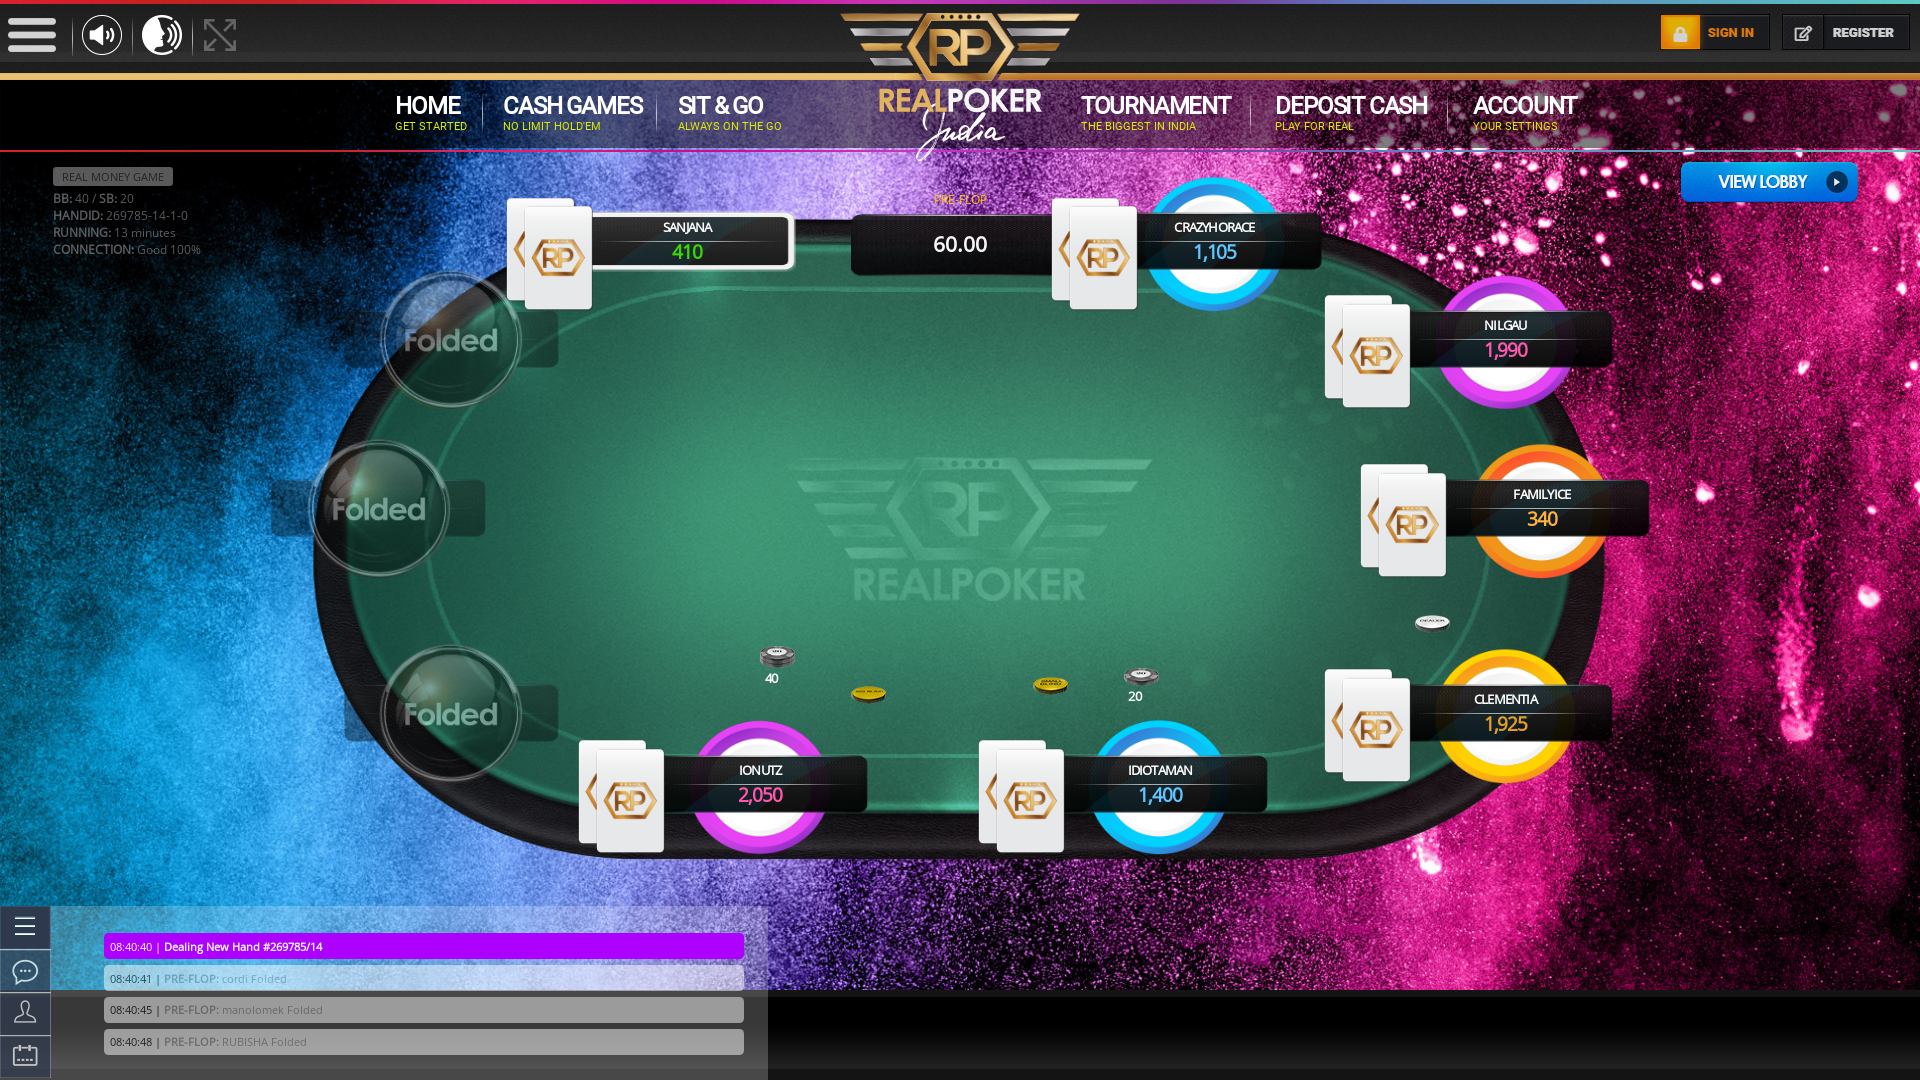 Whitefield, Bangalore Online Poker from 16th November